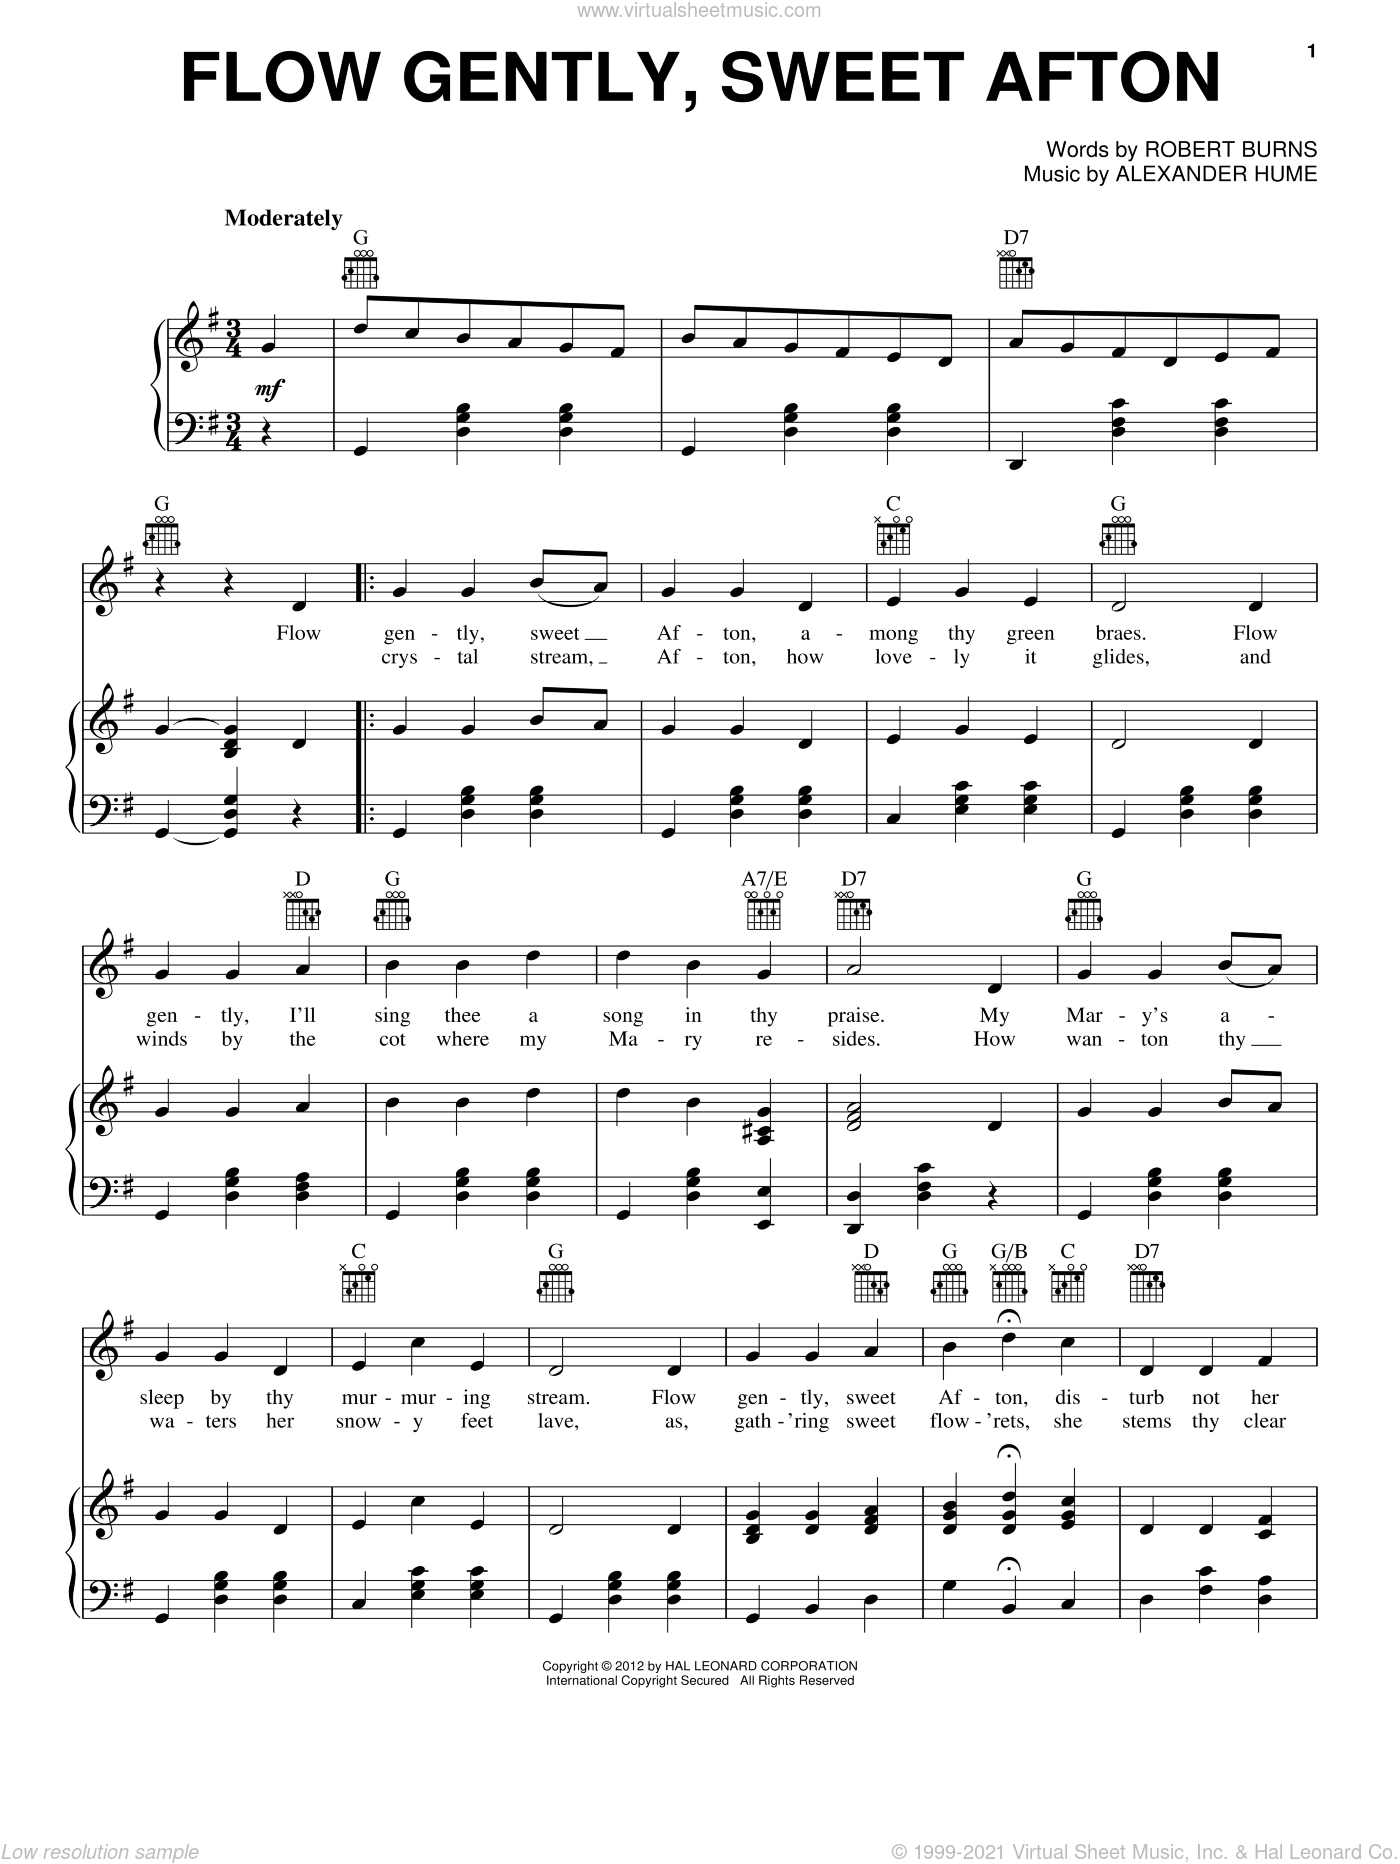 Flow Gently, Sweet Afton sheet music for voice, piano or guitar by Robert Burns and Alexander Hume, intermediate skill level